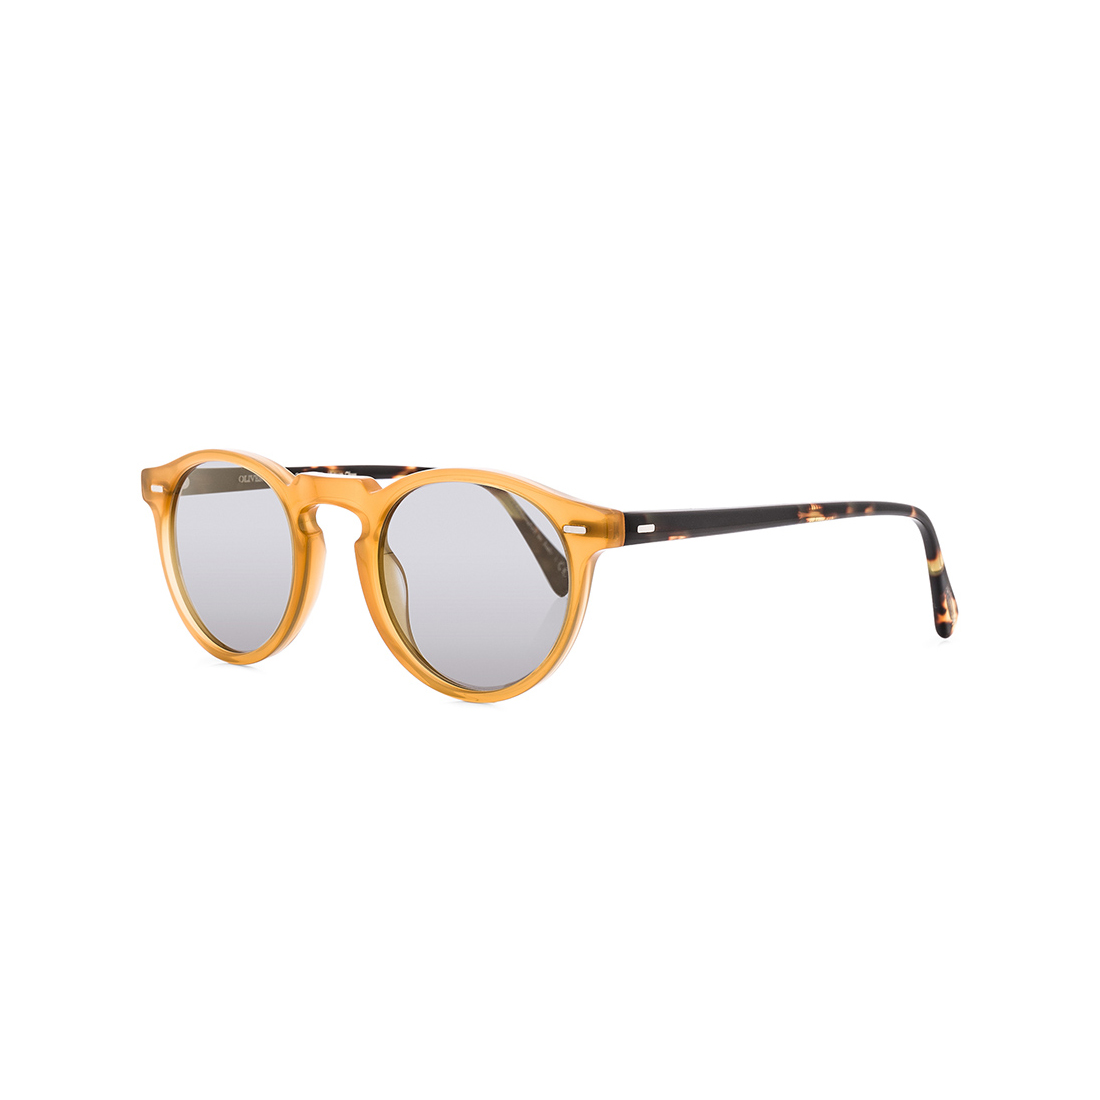 OLIVER PEOPLES Gregory Peck Limited Edition Sunglasses